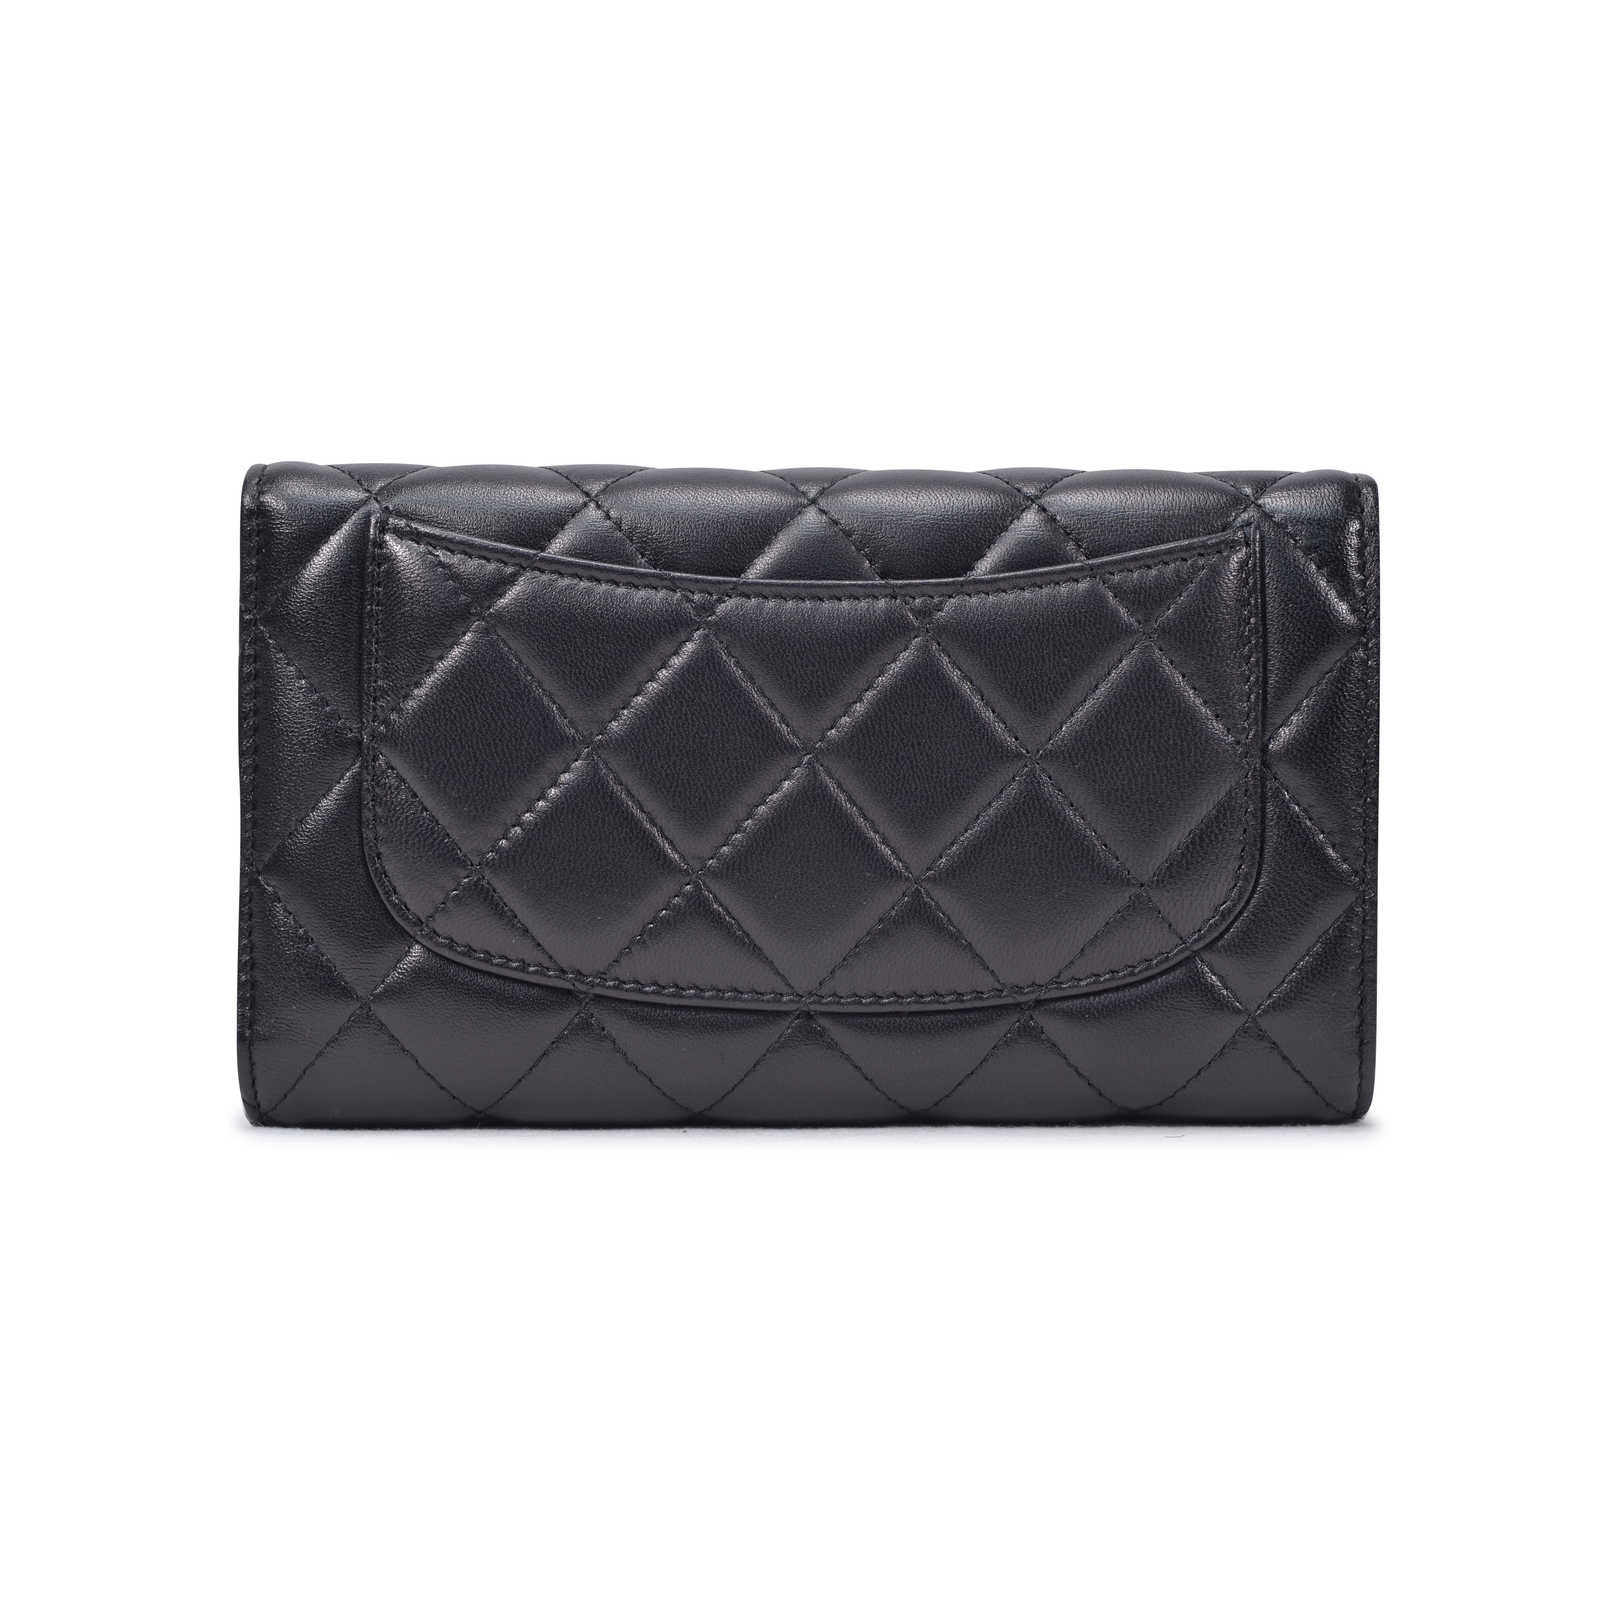 2467c3e7cef8 ... Authentic Second Hand Chanel Quilted Classic Long Wallet  (PSS-334-00012) ...